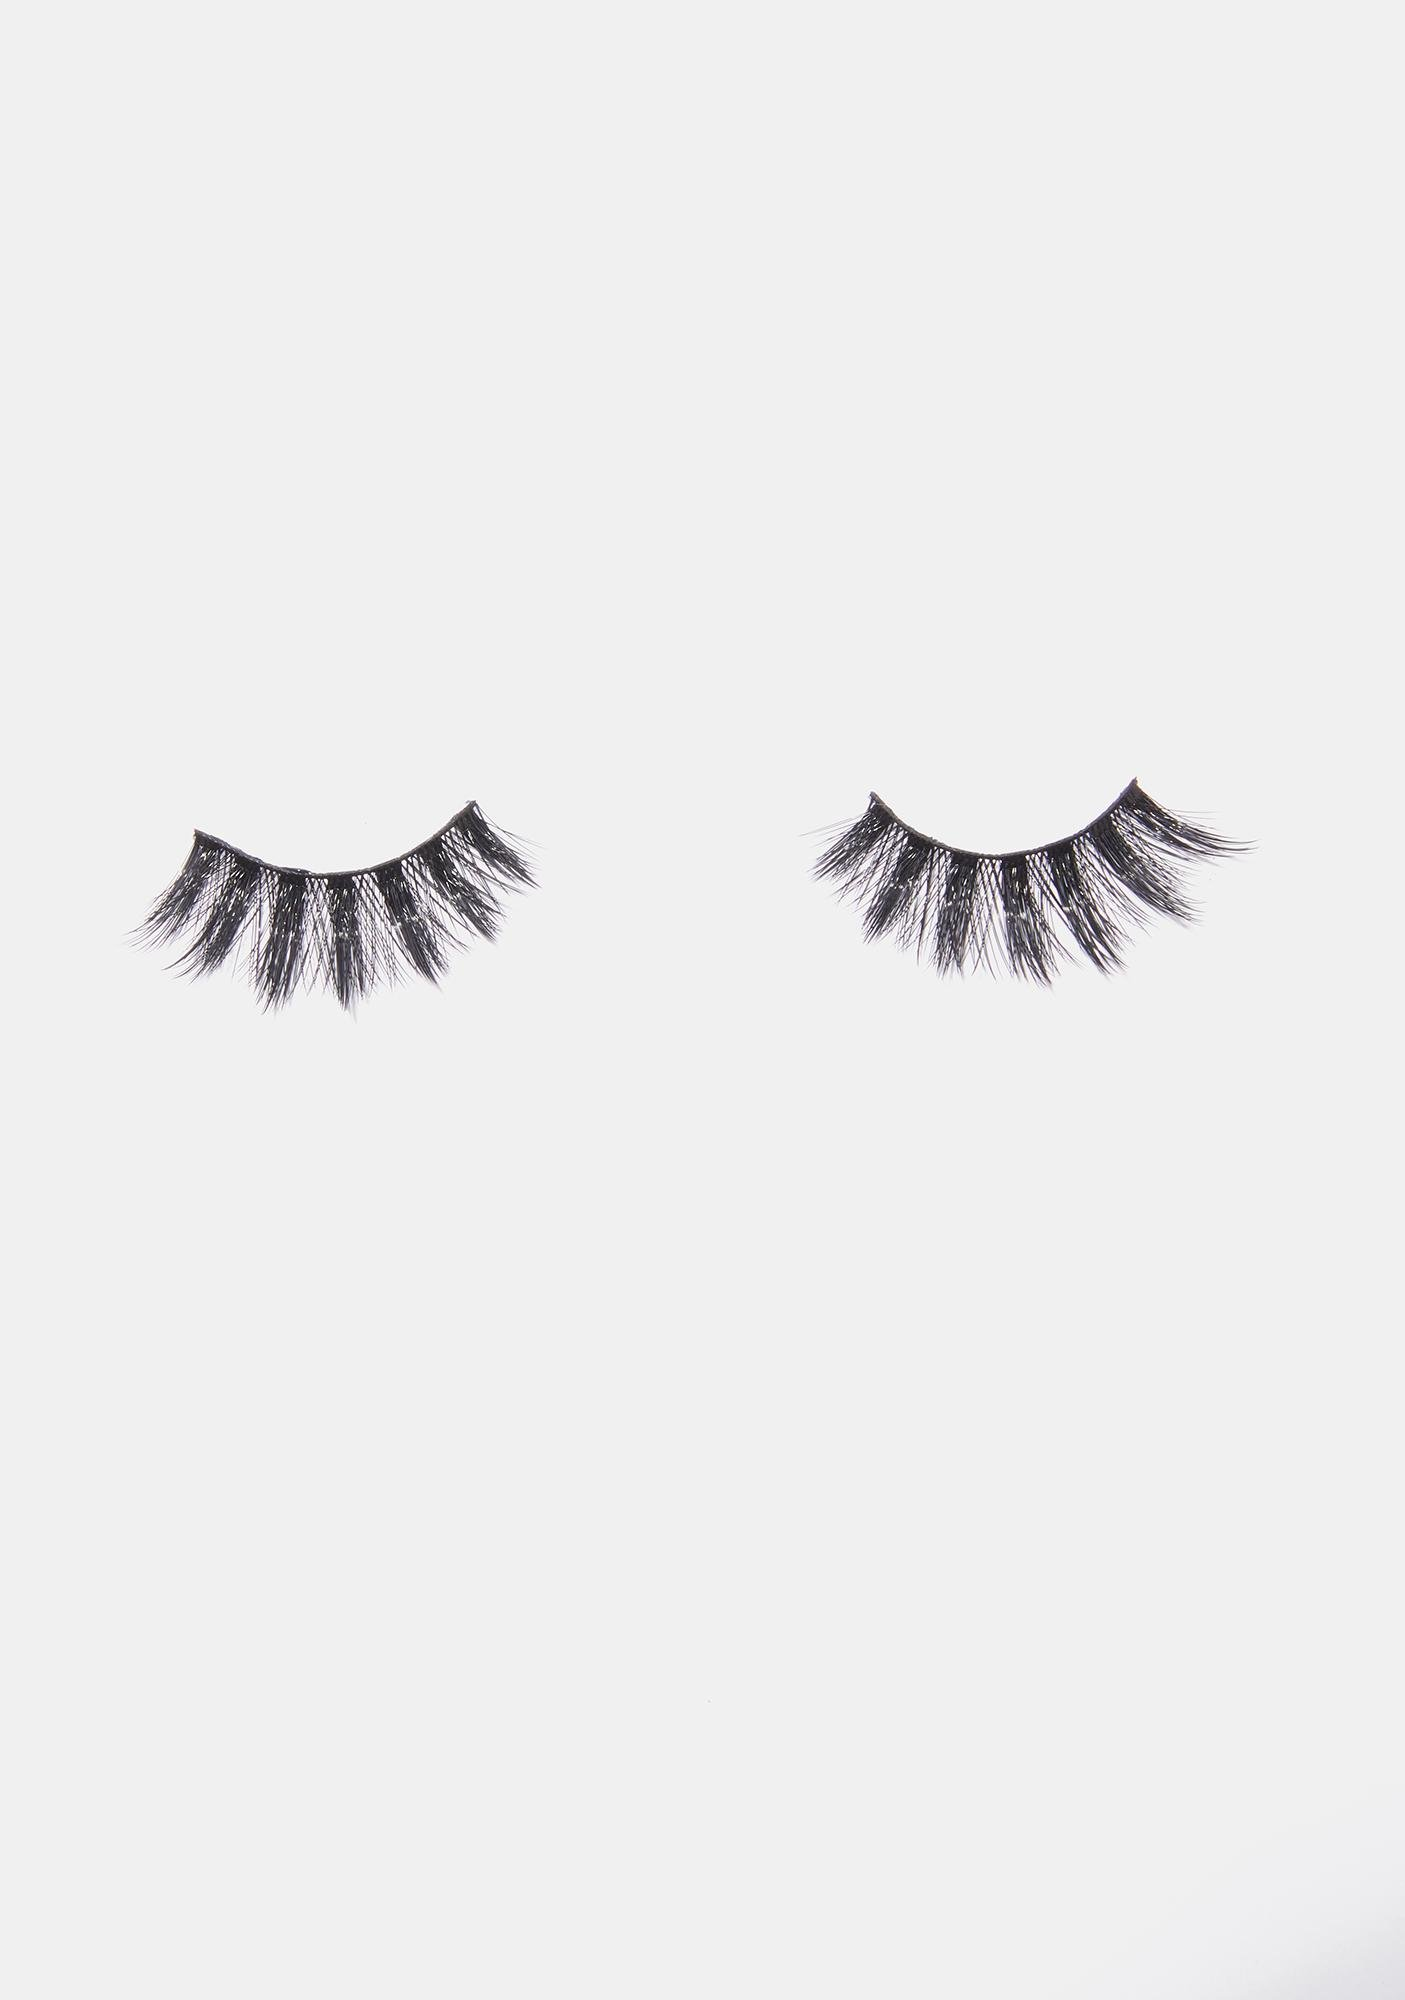 BADDIE B Snob Synthetic Lashes